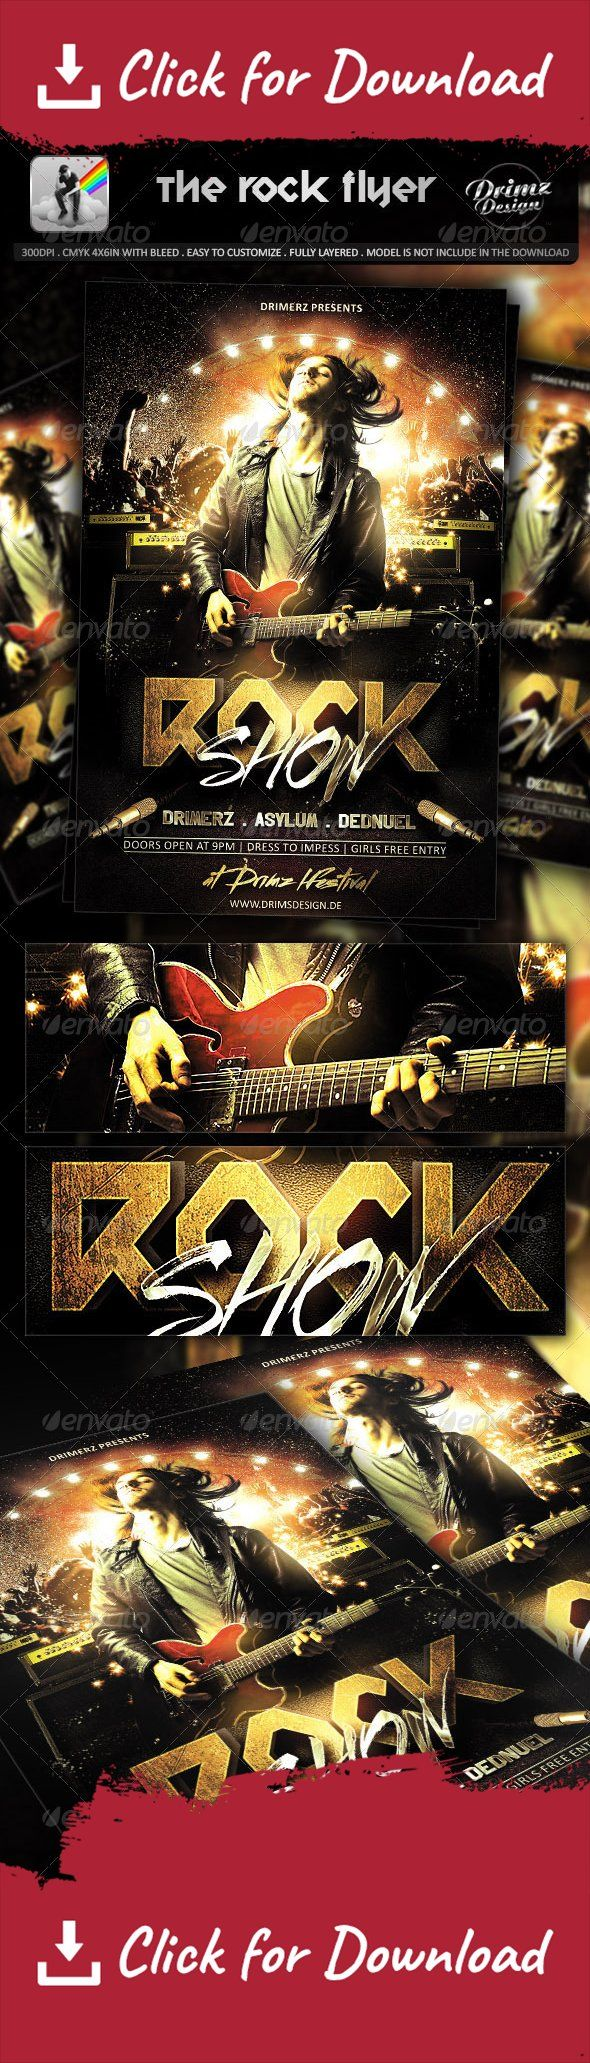 """club, drimerz, fest, festival, flyer, glow, glowing, guitar, guitarist, lamp, light, loud, music, night, rock, shine, shiny, stage, yard NEW RELEASES TEXT STYLES     NEW RELEASES MIXTAPES      CHECK OUT MY PORTFOLIO      a rock style flyer. perfect for your event.   CMYK, 300DPI, 4×6"""" with 0.25"""" bleed, easy to customize, fully layered.   this flyer used :   Street Brush   http://www.myfonts.com/fonts/robarnow/streetbrush/  Calibri   http://www.fonts.com/font/microso..."""